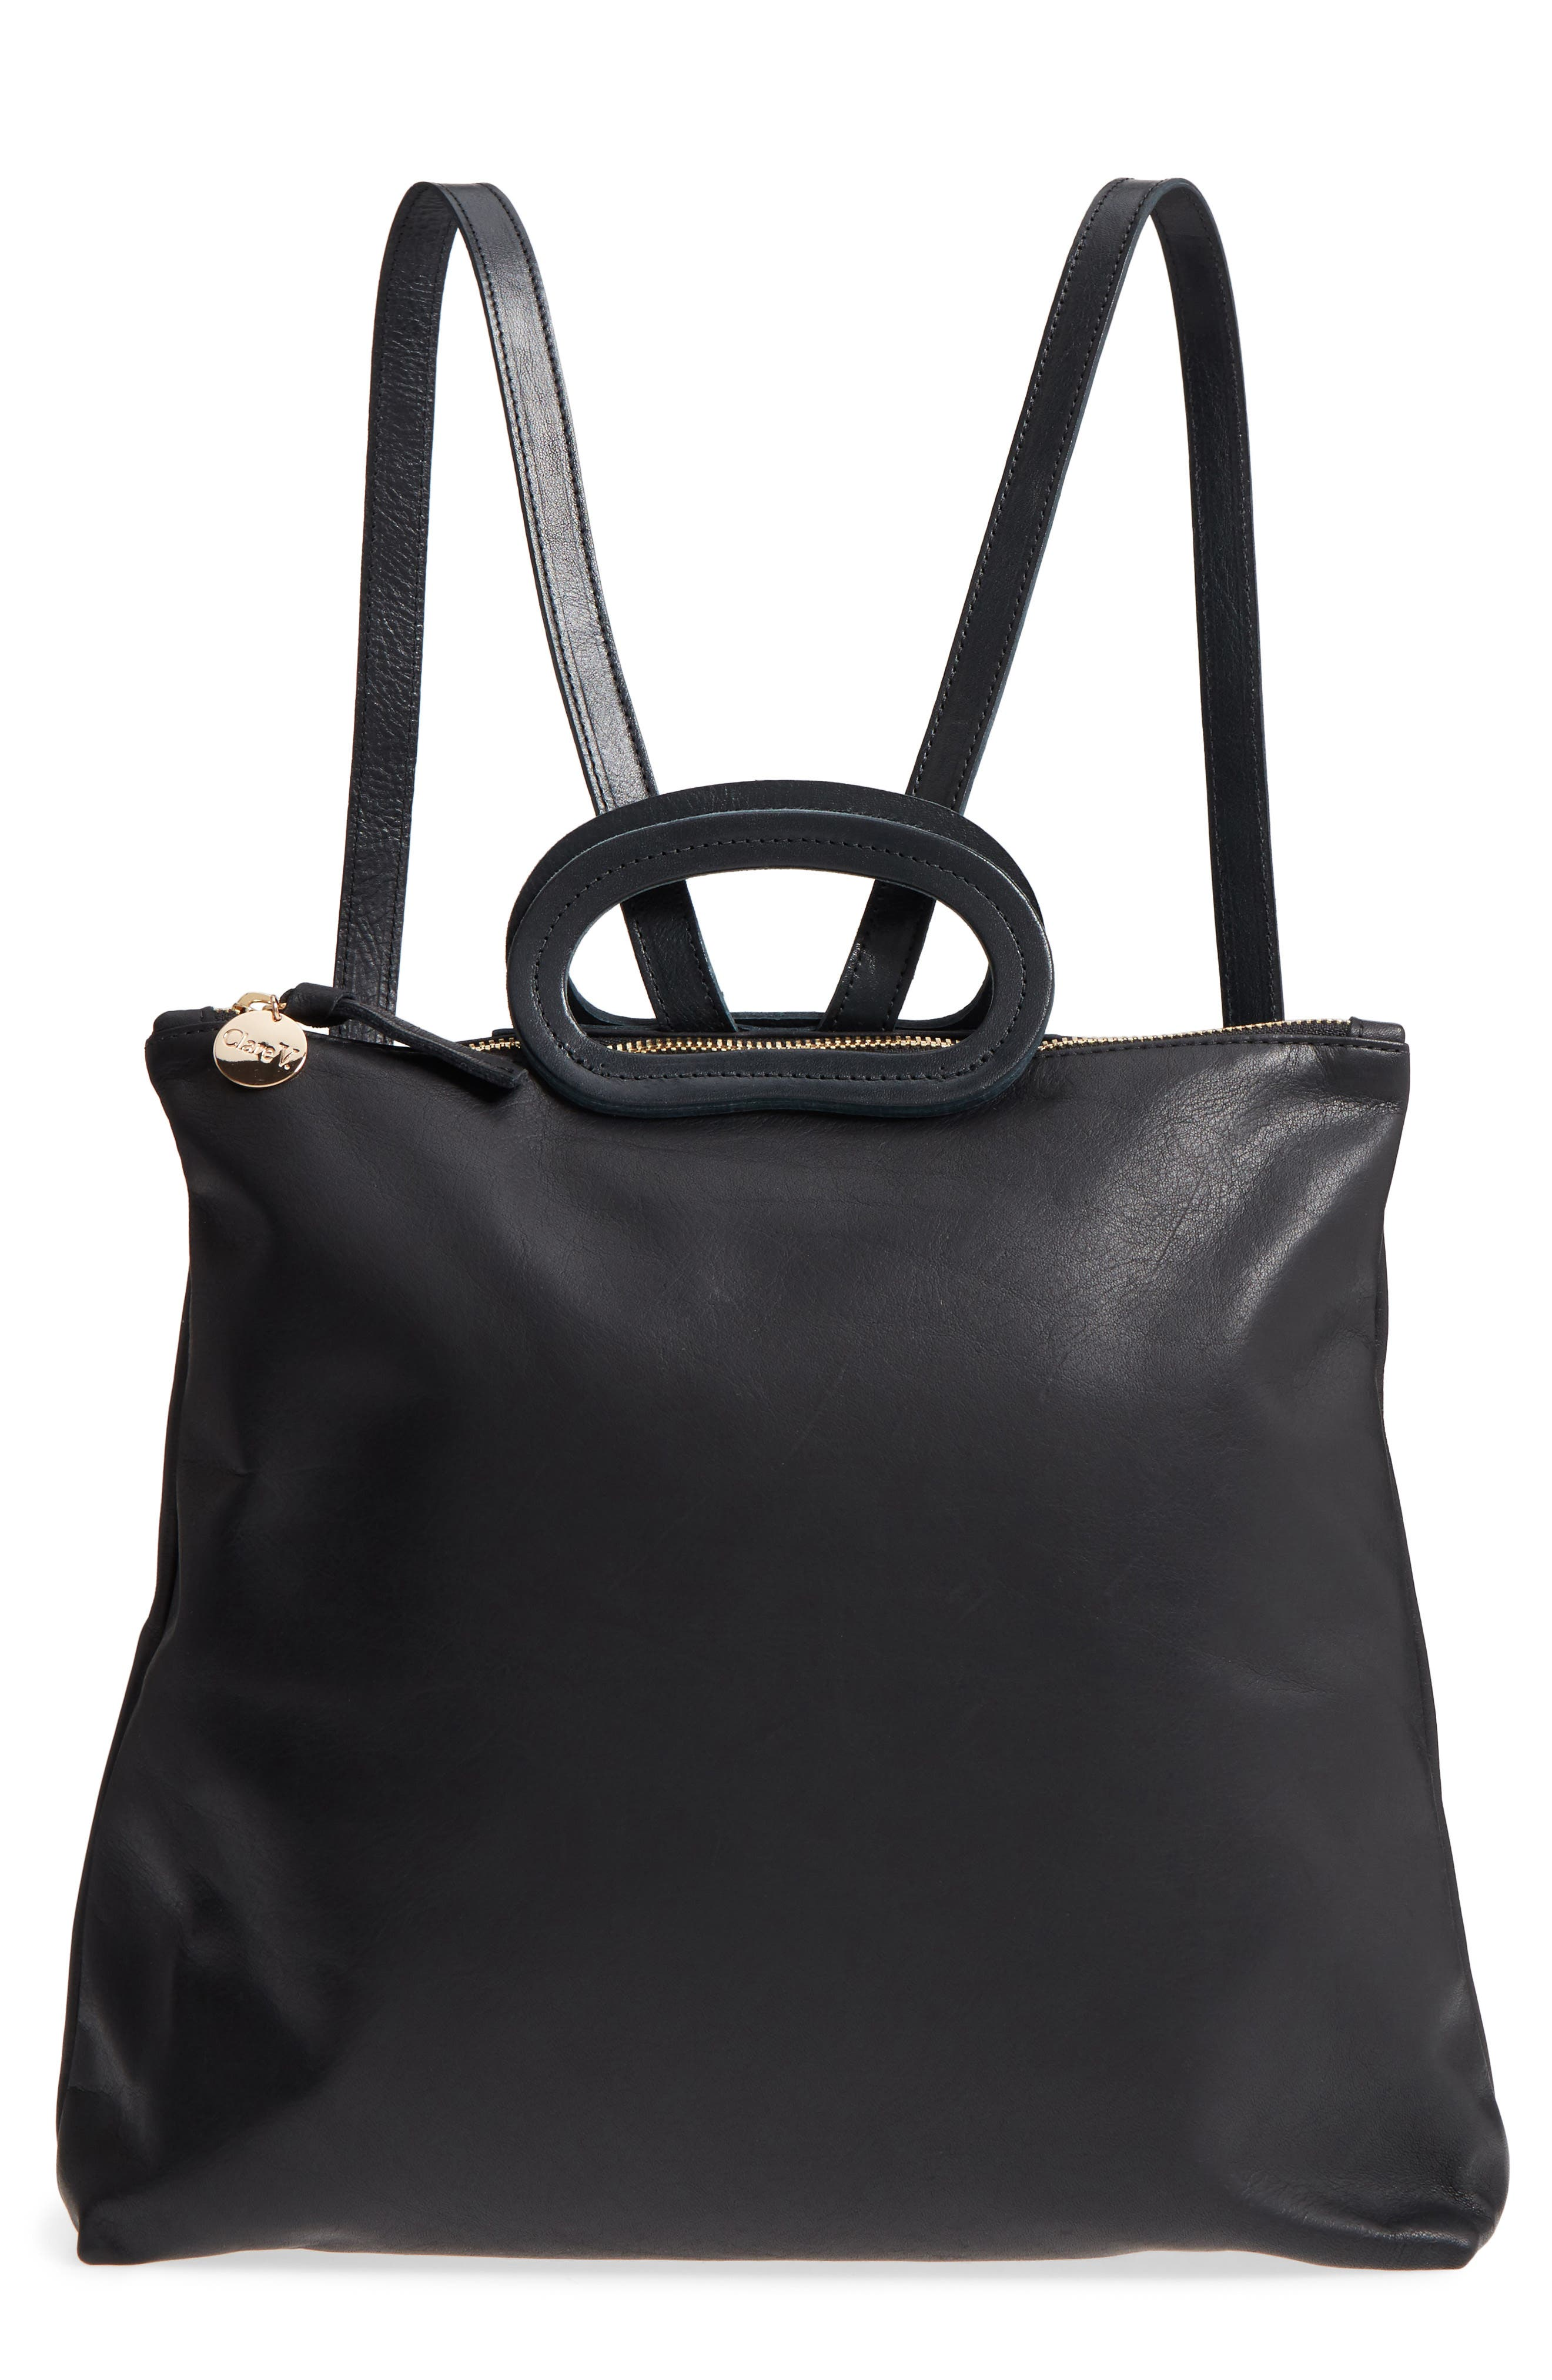 Marcelle Lambskin Leather Backpack,                             Main thumbnail 1, color,                             Black